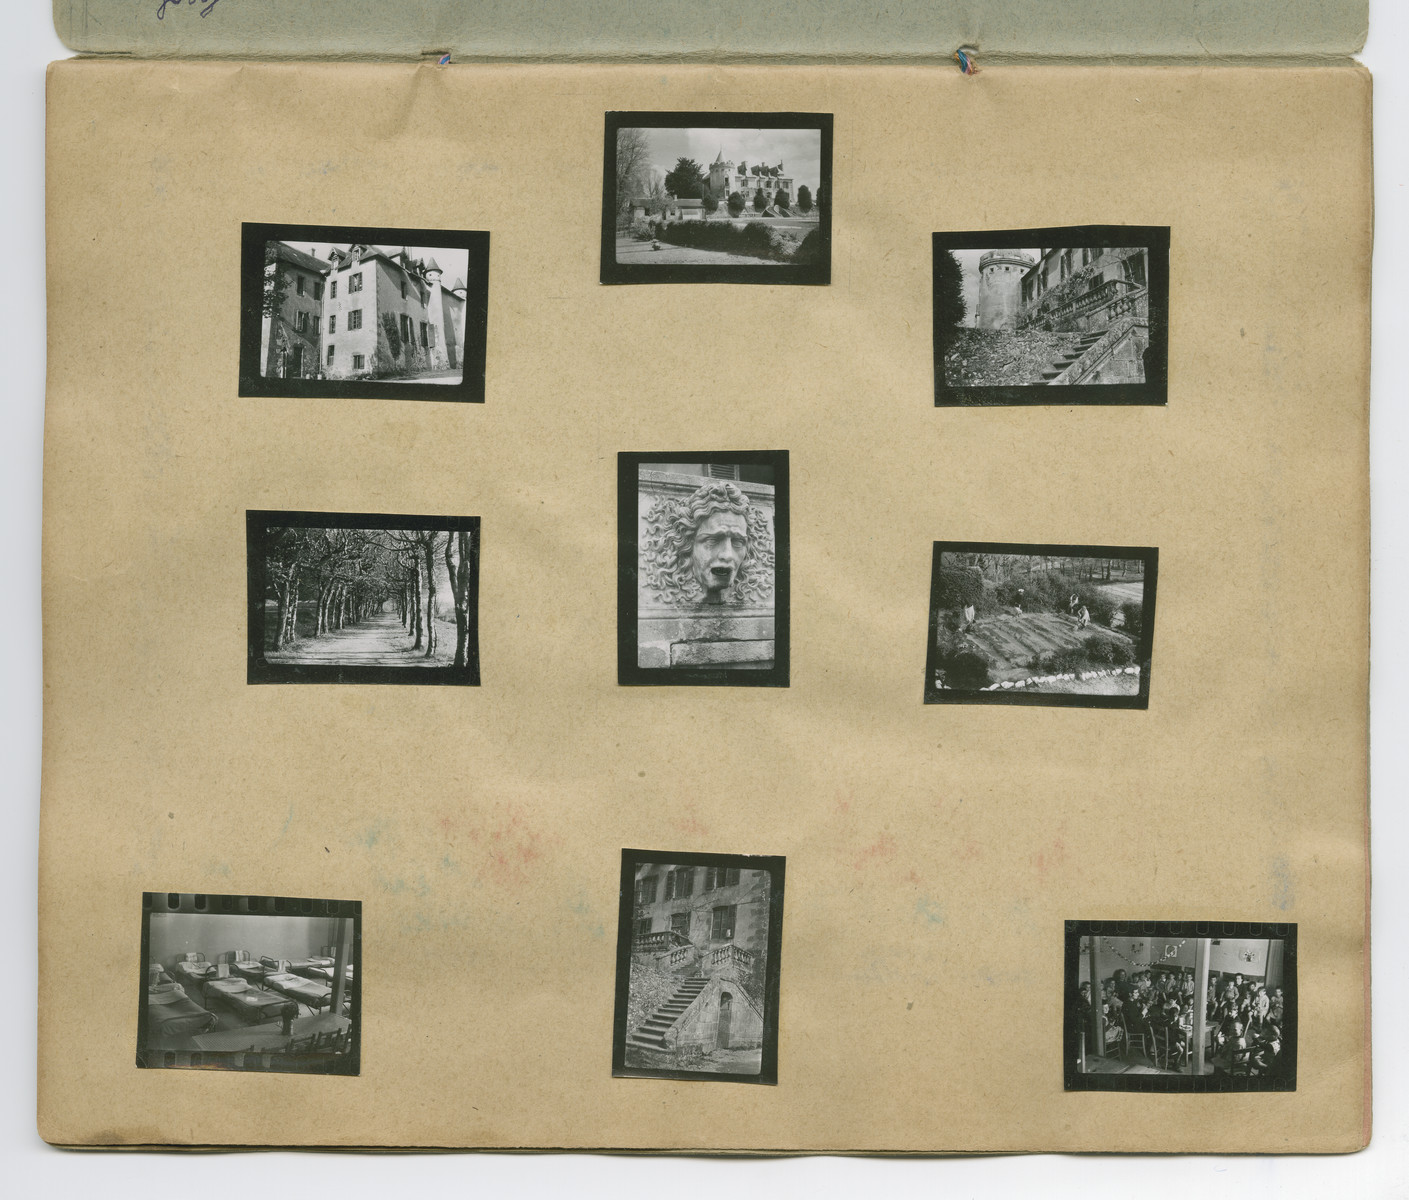 Photographs of Chateau-le-Masgelier from a souvenir scrapbook presented to Boris Wolosoff prior to his emigration from France.